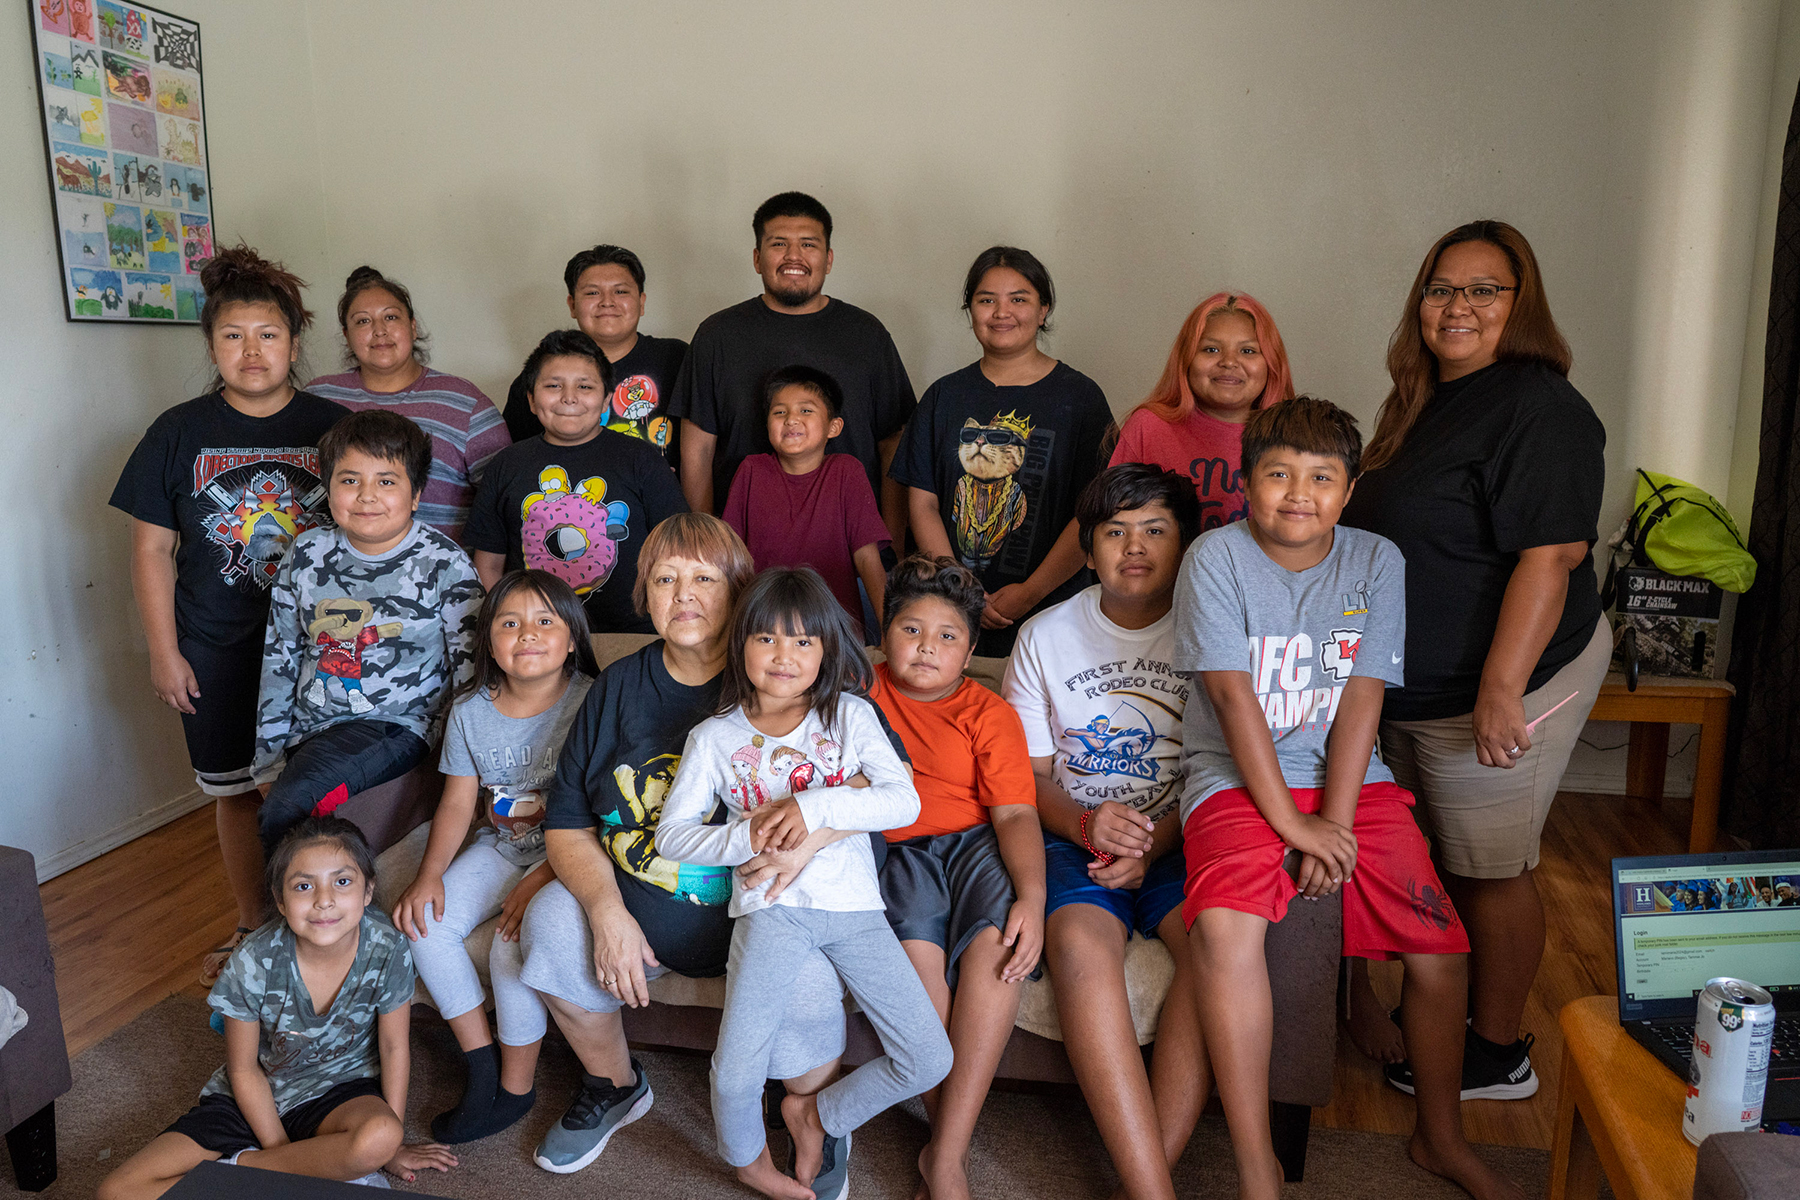 The extended Mariano family (Tammie on right) poses for a photo in their home in Shiprock. Internet access was a struggle for every age group.